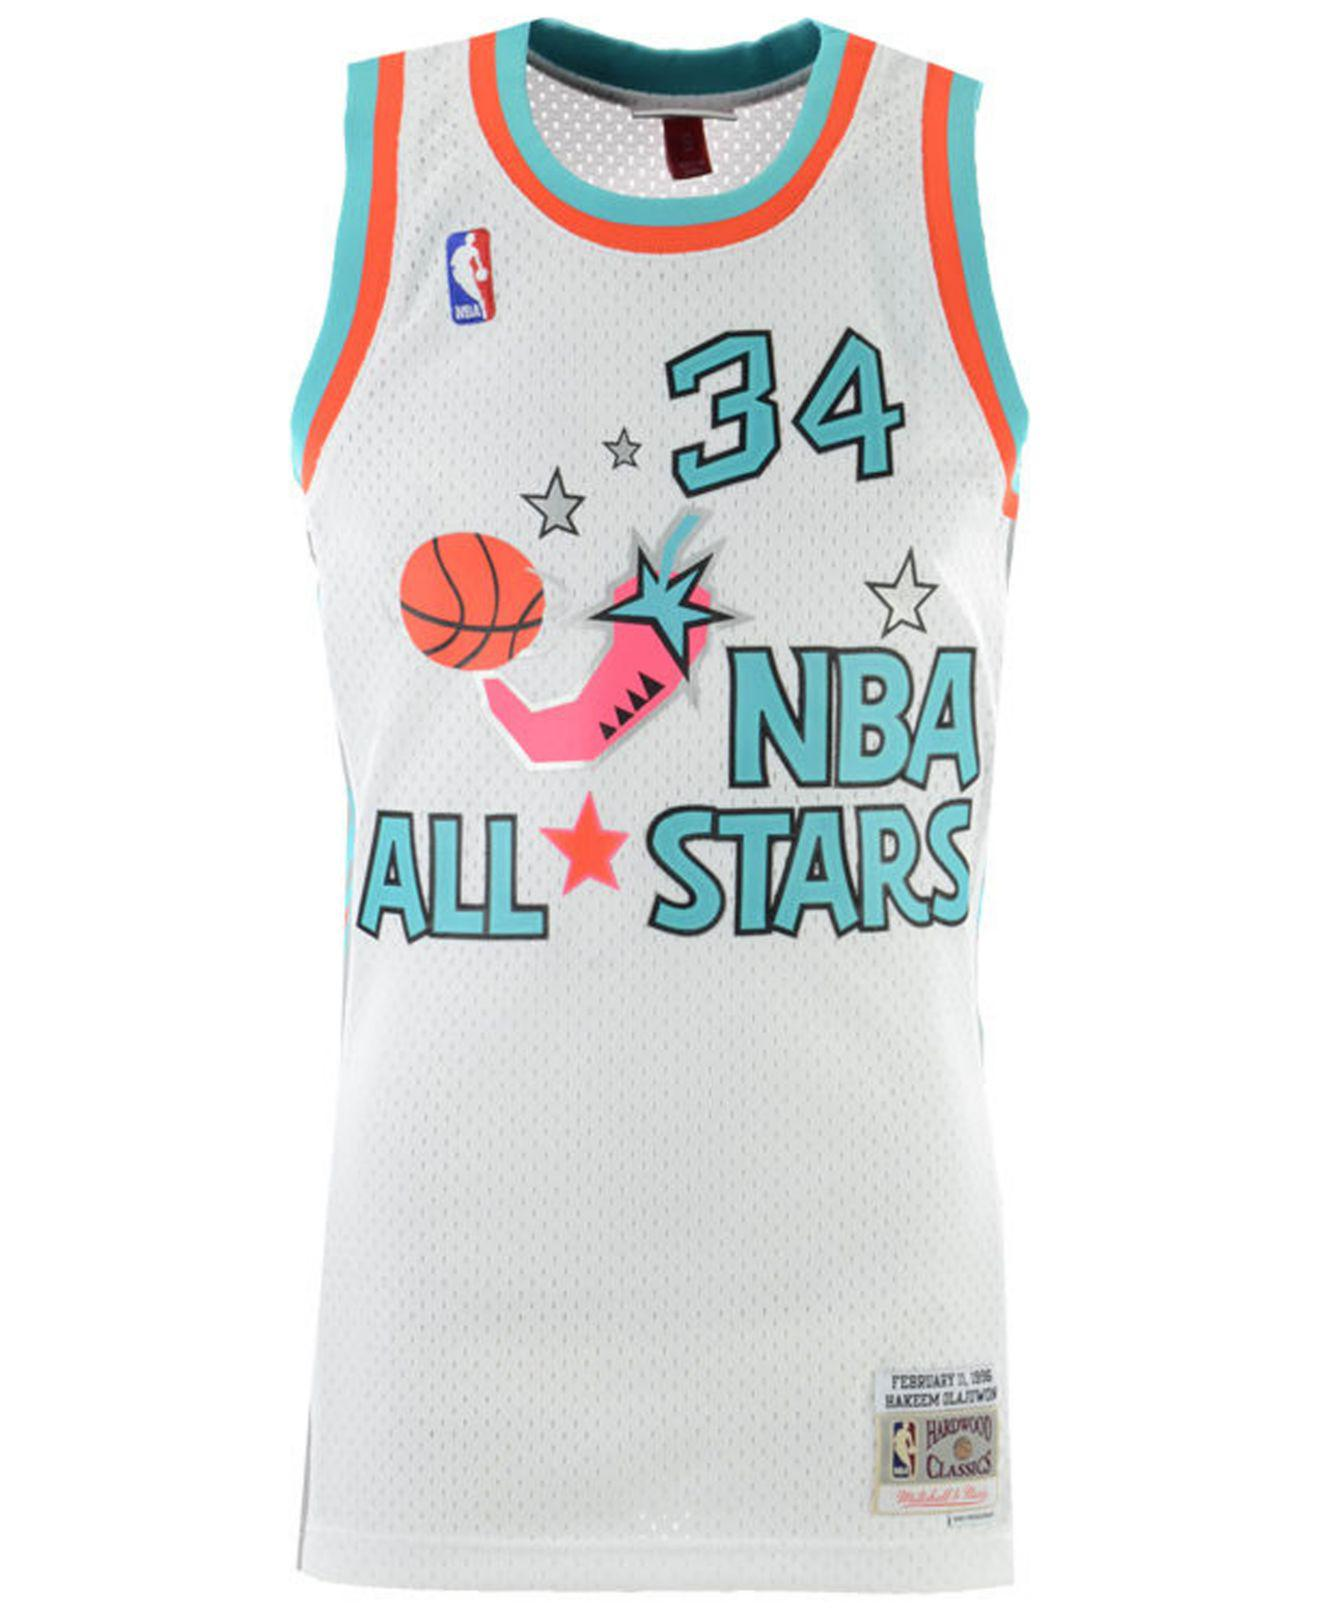 17c09ea3d54 Mitchell & Ness. Men's Blue Hakeem Olajuwon Nba All Star 1996 Swingman  Jersey